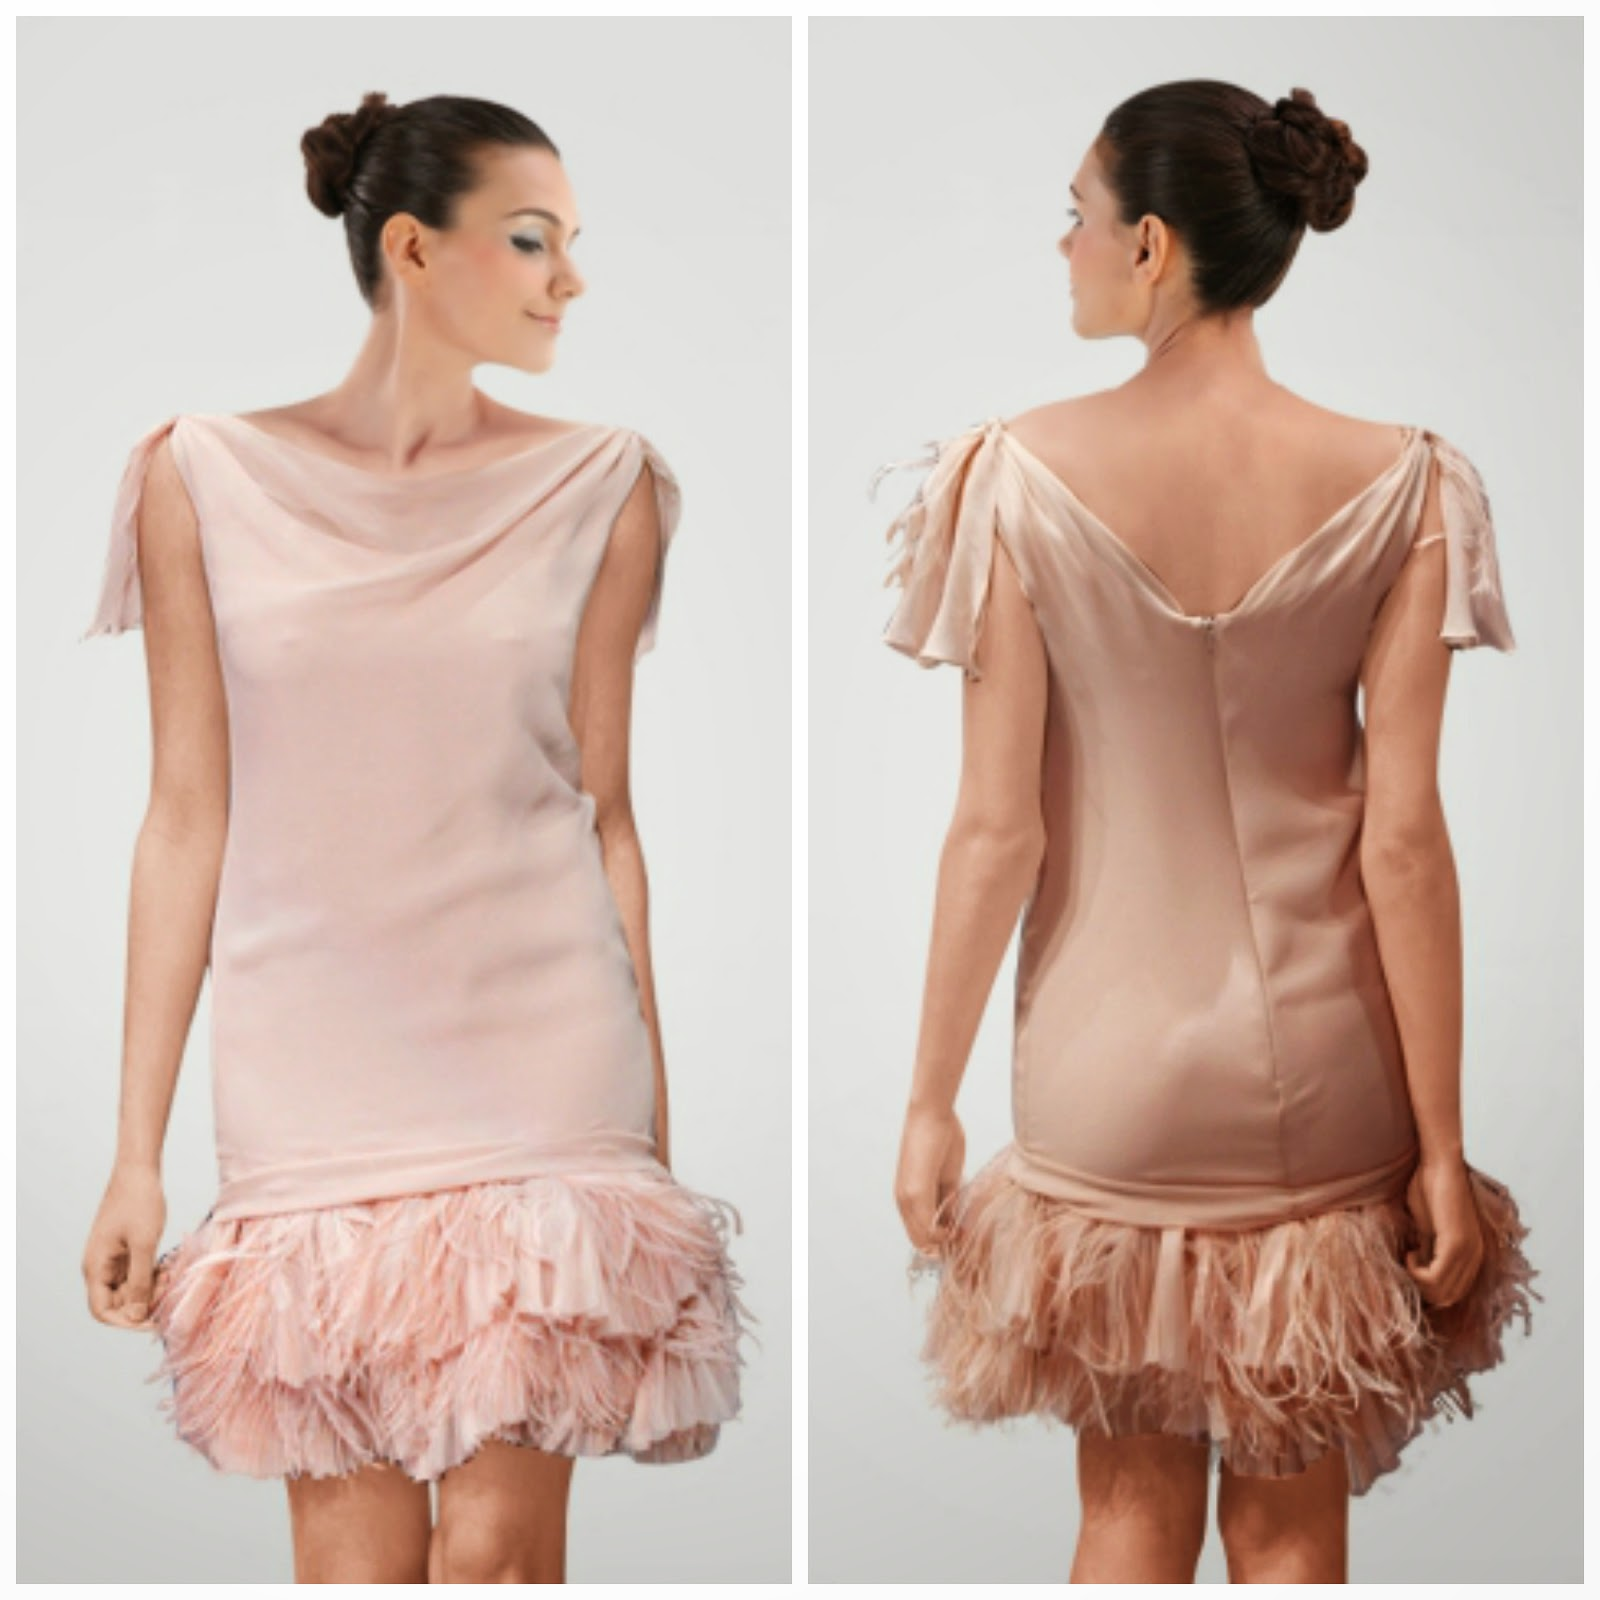 http://www.dressale.com/fashionable-cocktail-dress-featuring-elongated-bodice-and-tassel-skirt-p-84845.html